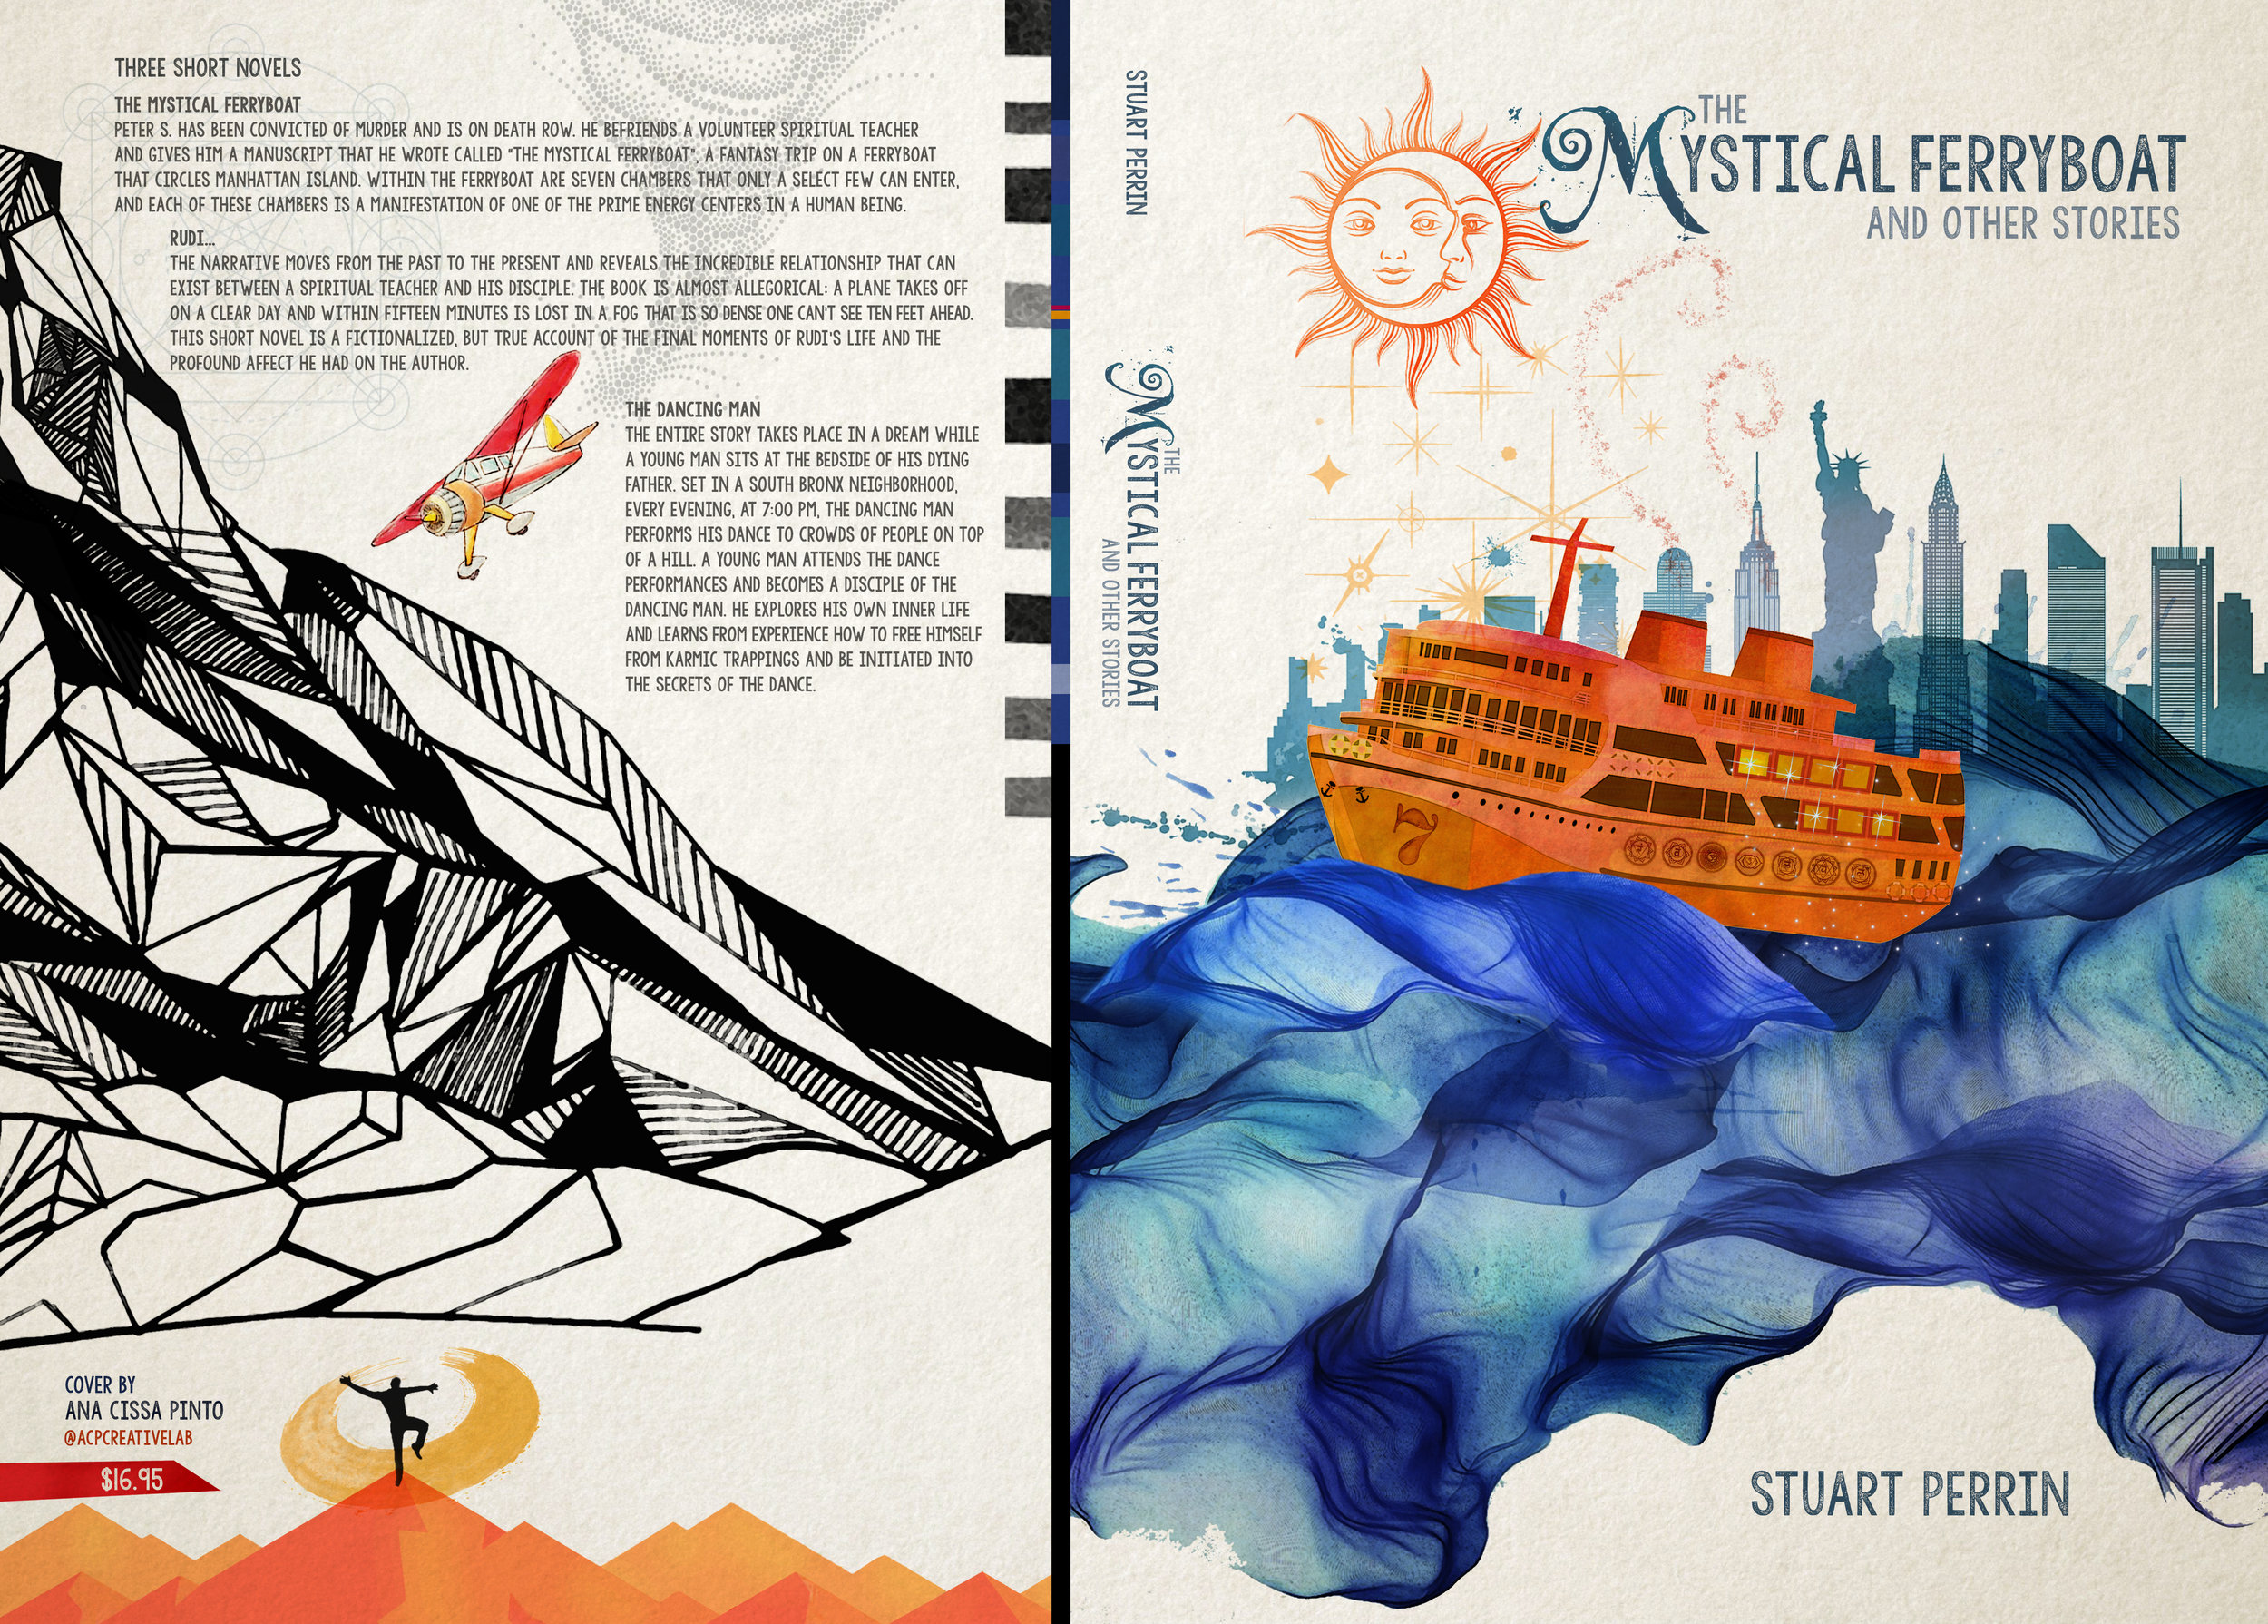 THE MYSTICAL FERRY BOAT_FINAL october 18.jpg